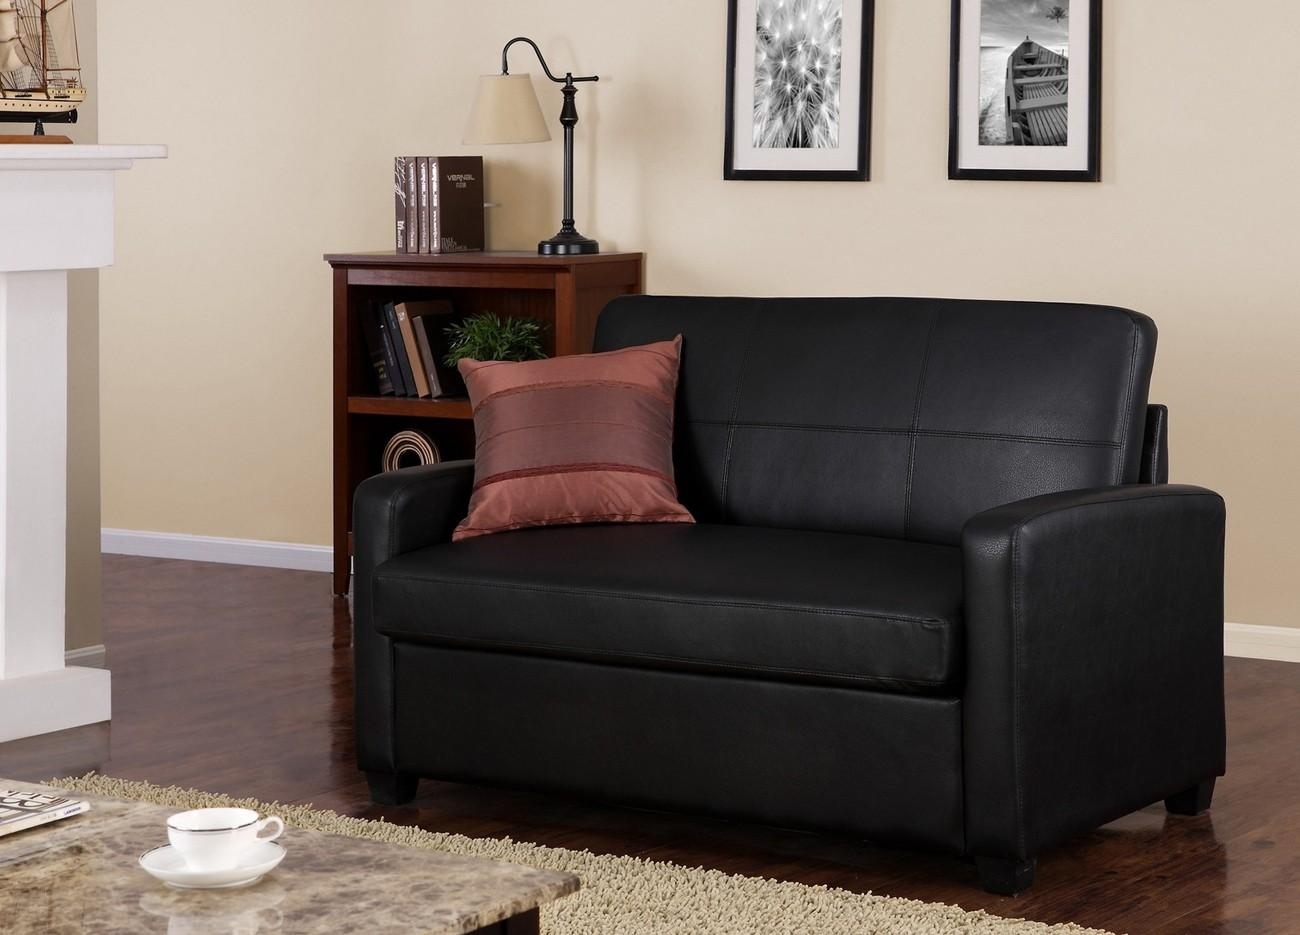 Mainstays | Black Faux Leather Sleeper Sofa For Mainstay Sofas (Image 4 of 20)